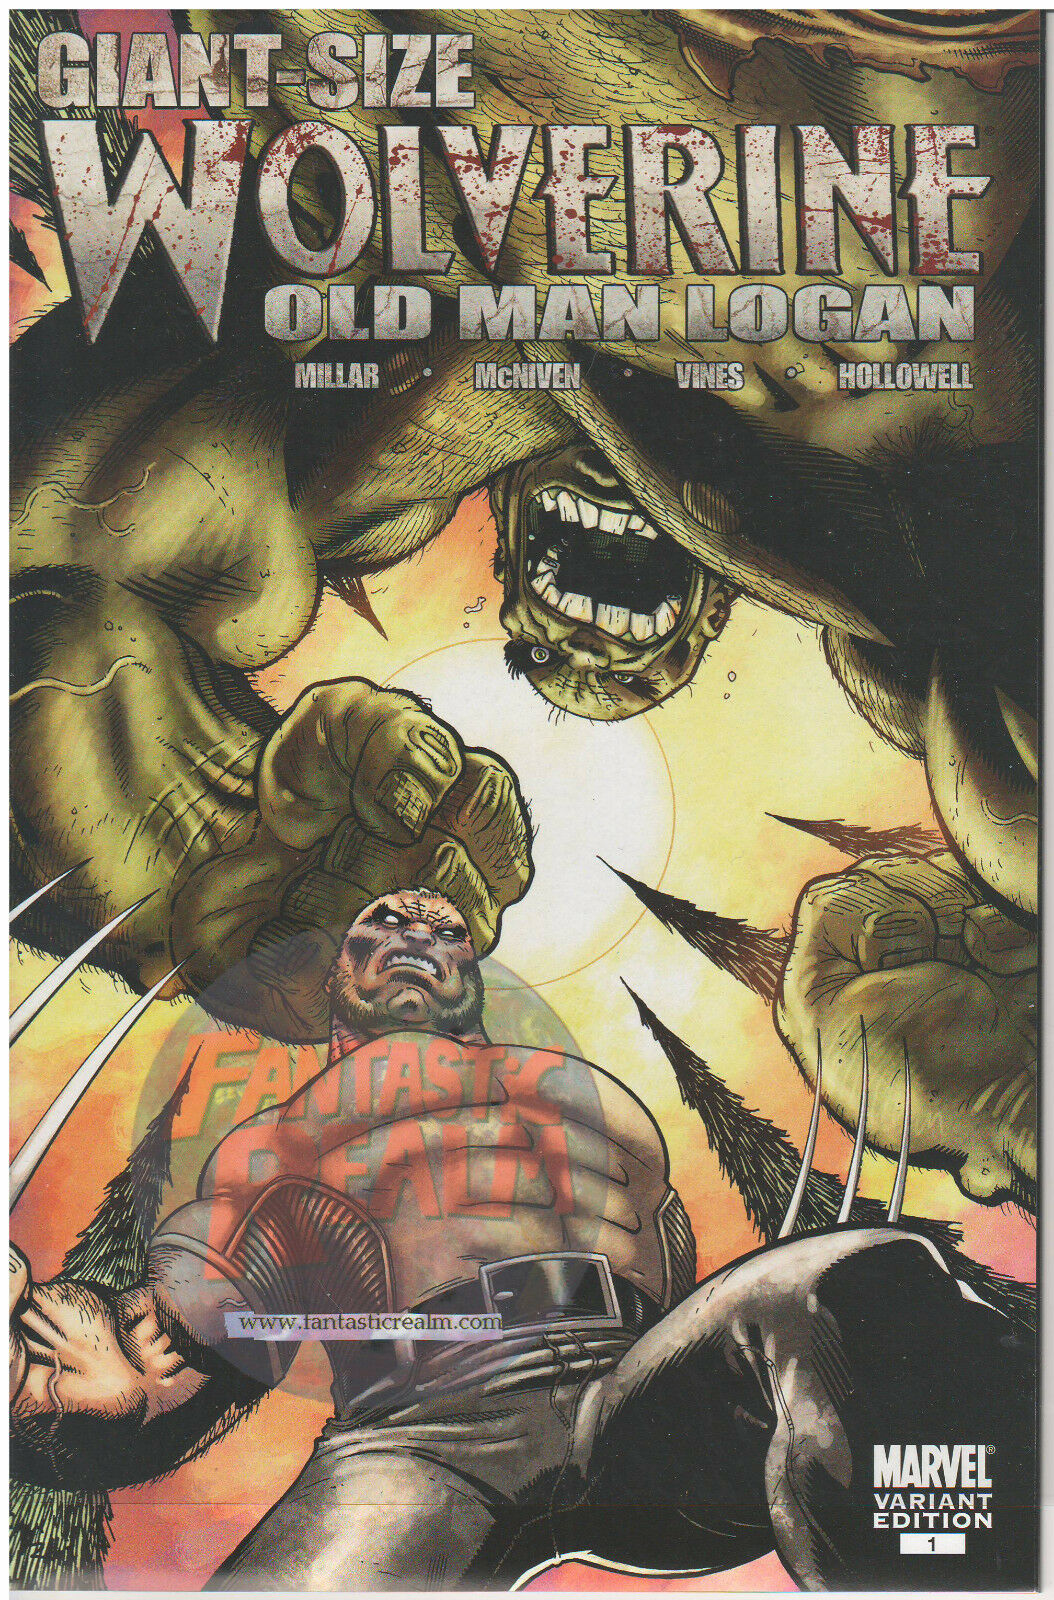 WOLVERINE: OLD MAN LOGAN #1 ED MCGUINNESS VARIANT GIANT SIZE MARVEL COMICS